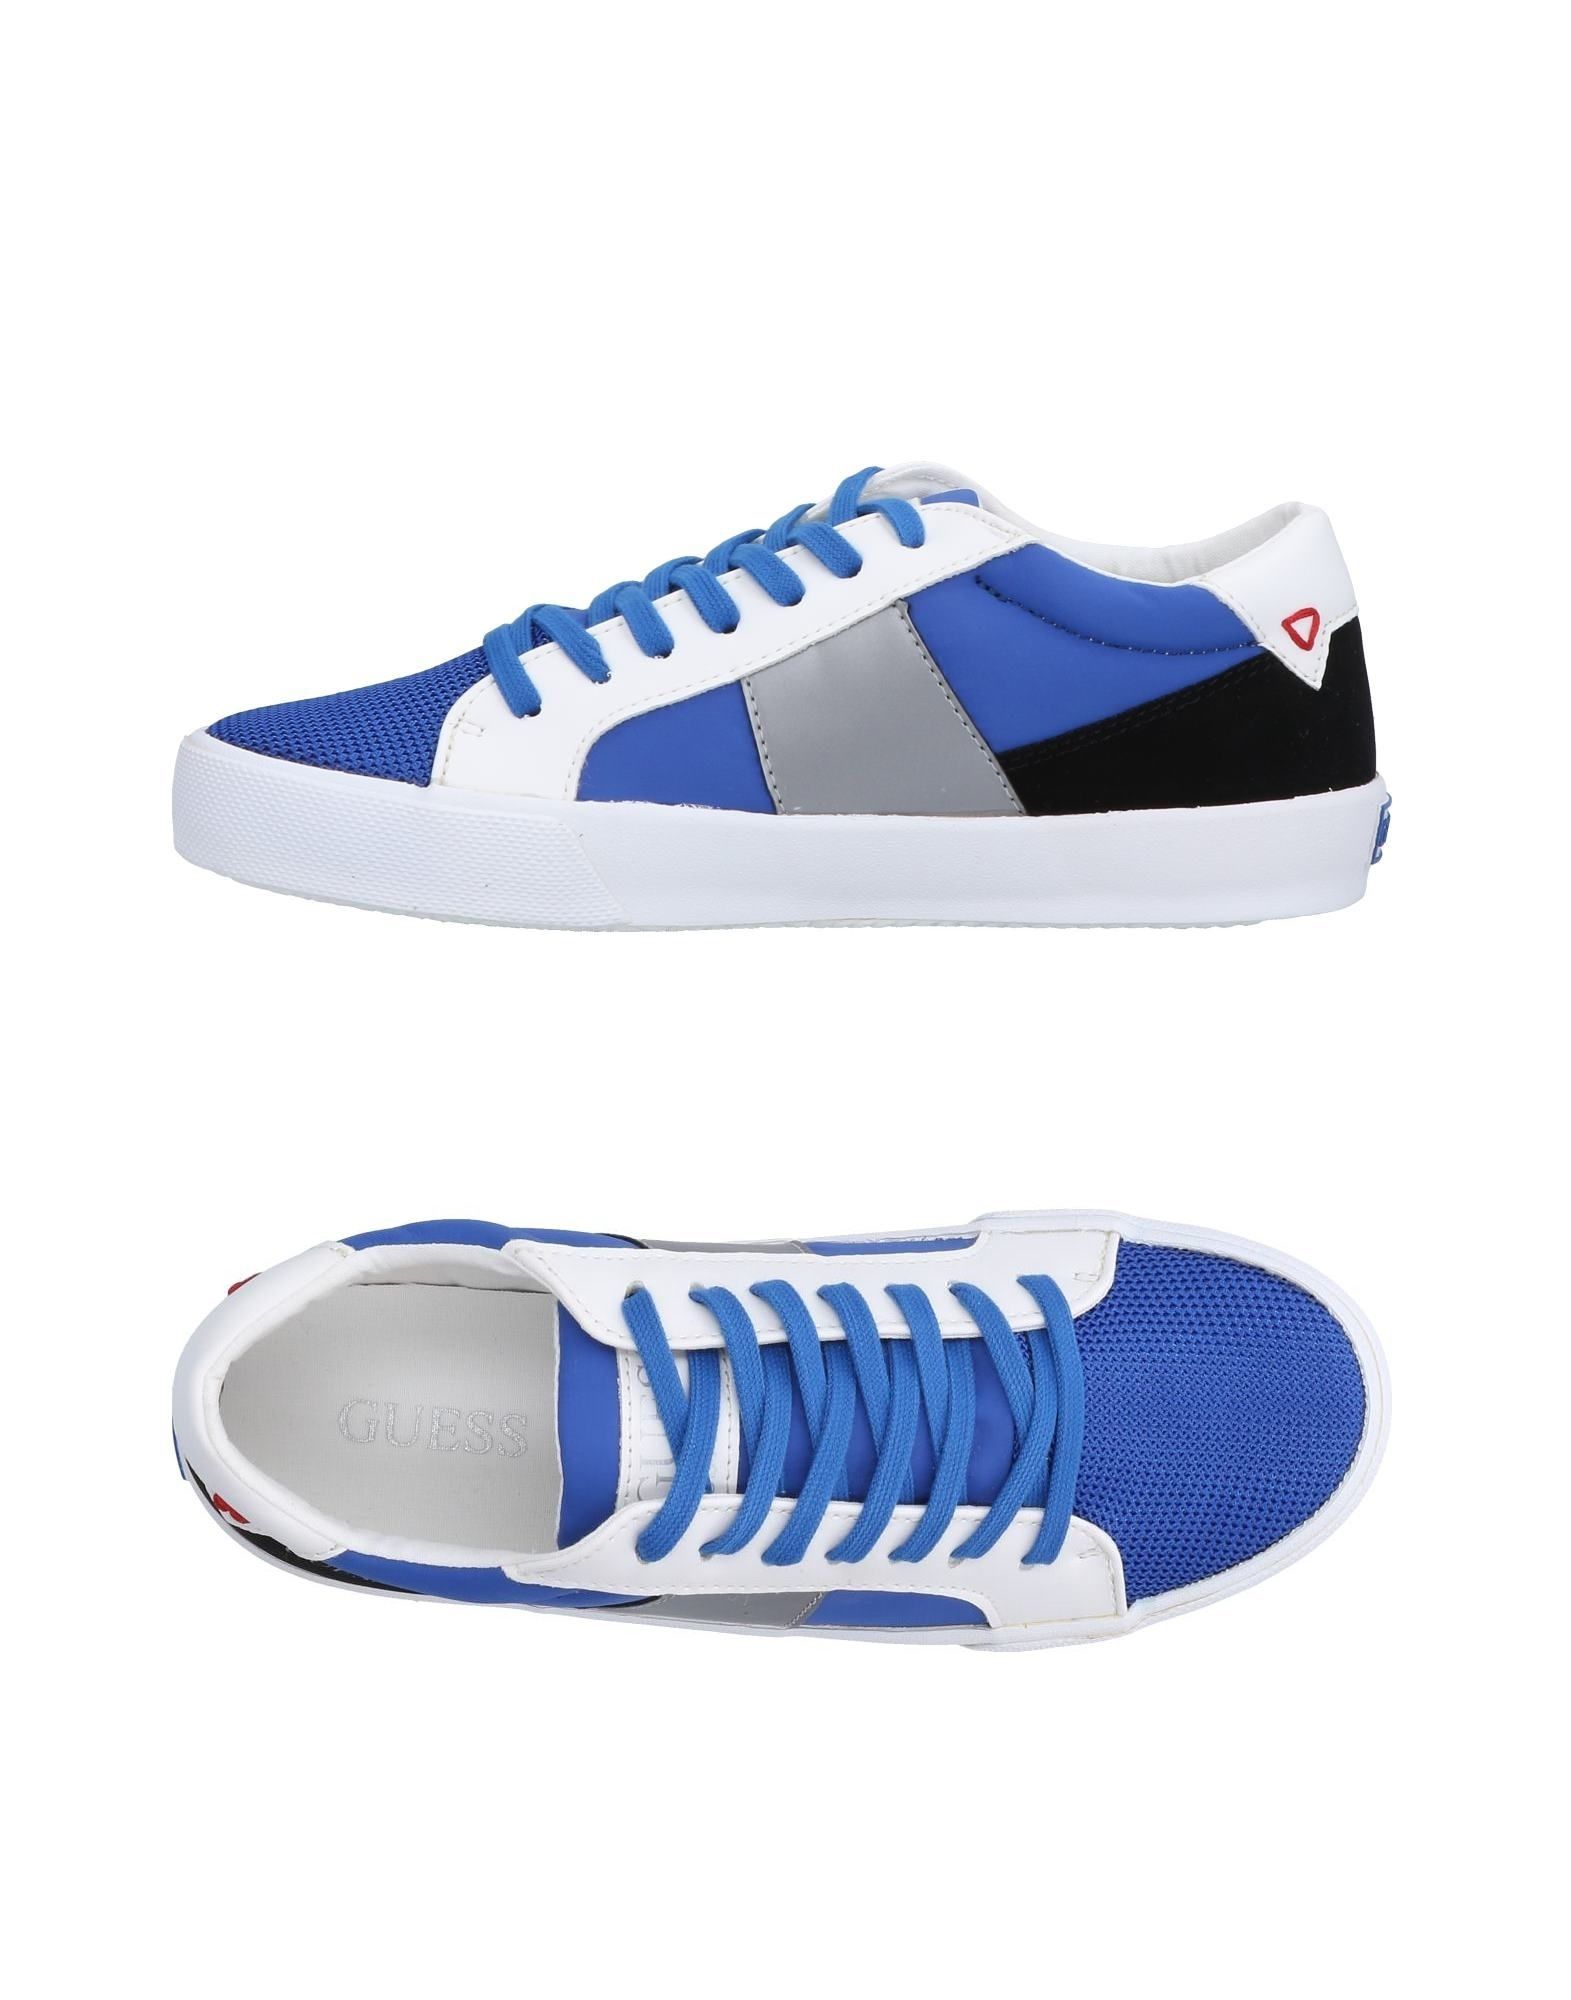 Moda Sneakers Guess Donna - 11504207TP